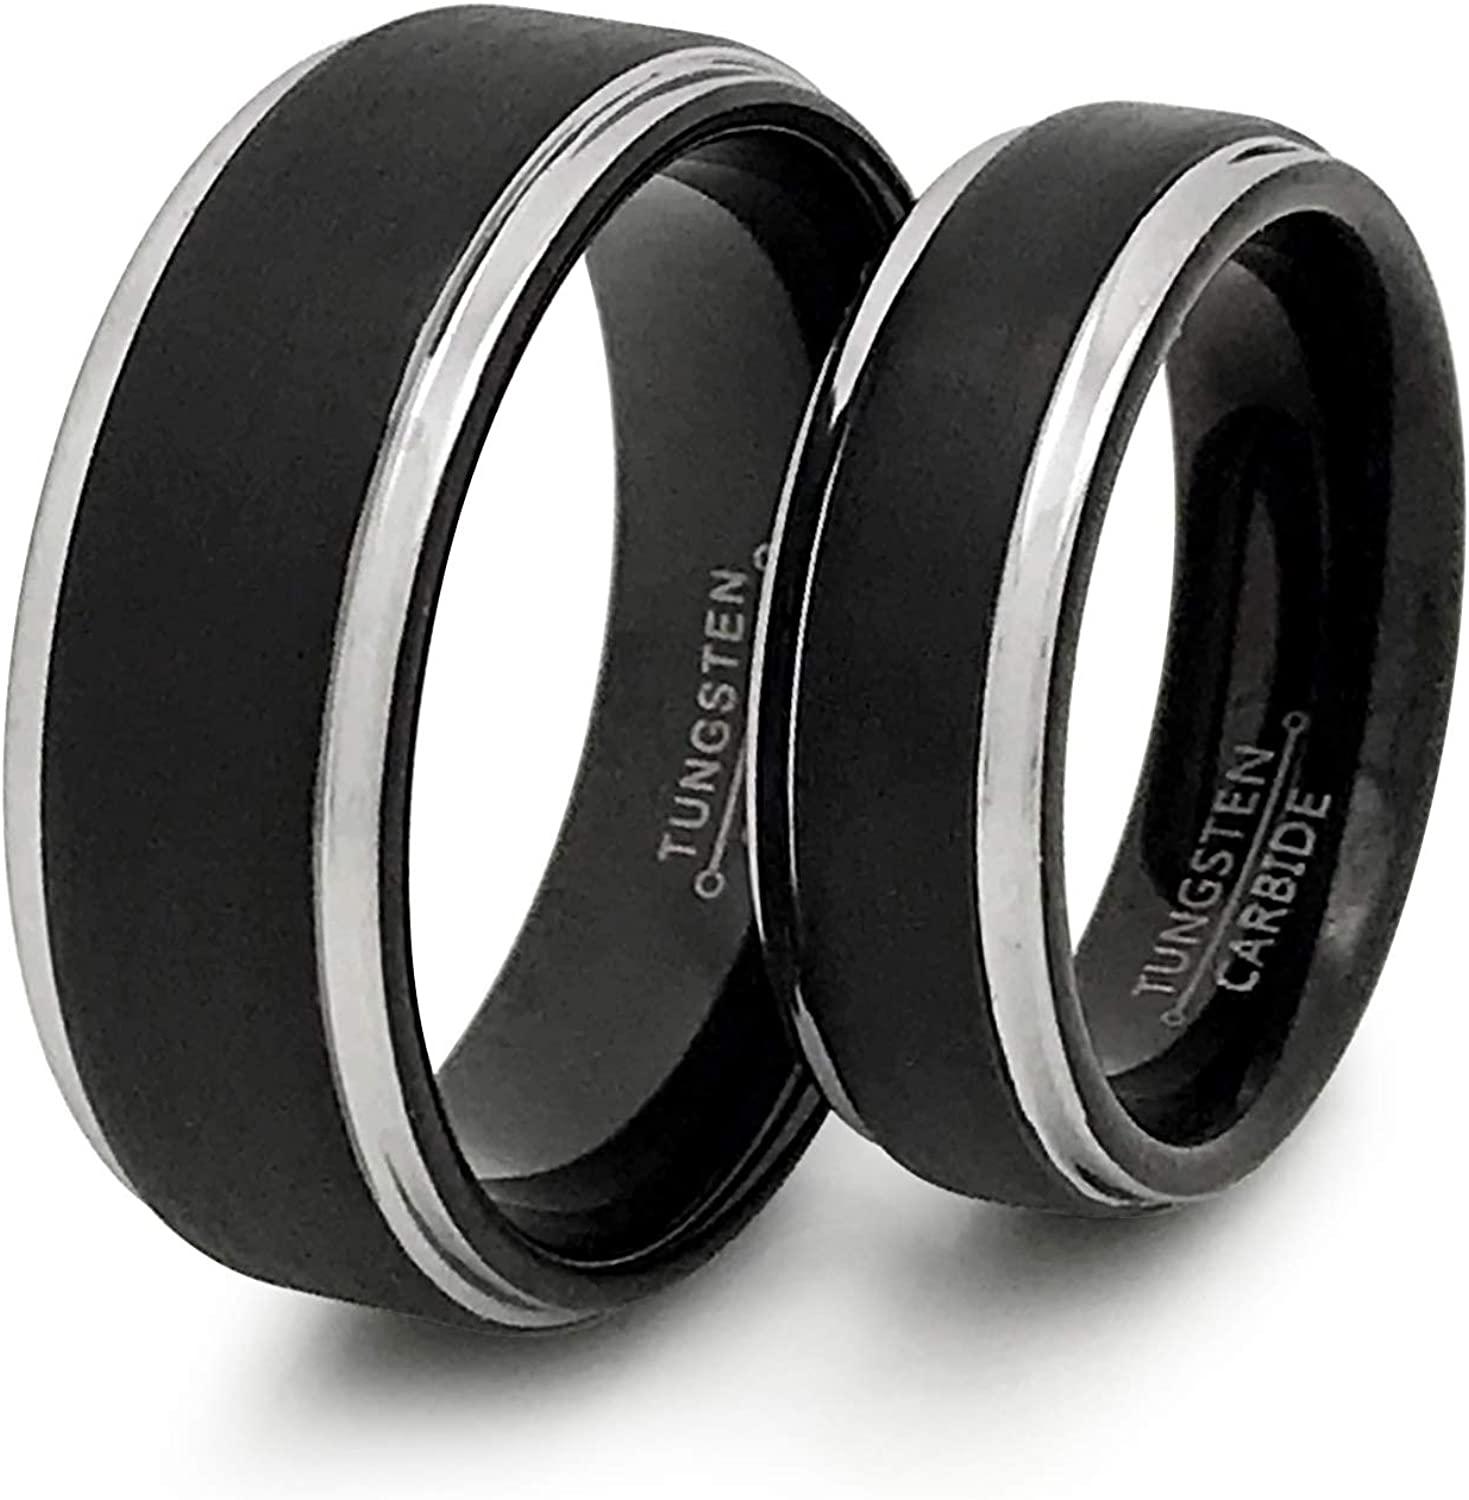 K & Co. 8mm/6mm Tungsten Wedding Rings, Personalized Couples Ring Set, His and Hers Tungsten Ring, Anniversary Rings TCR516